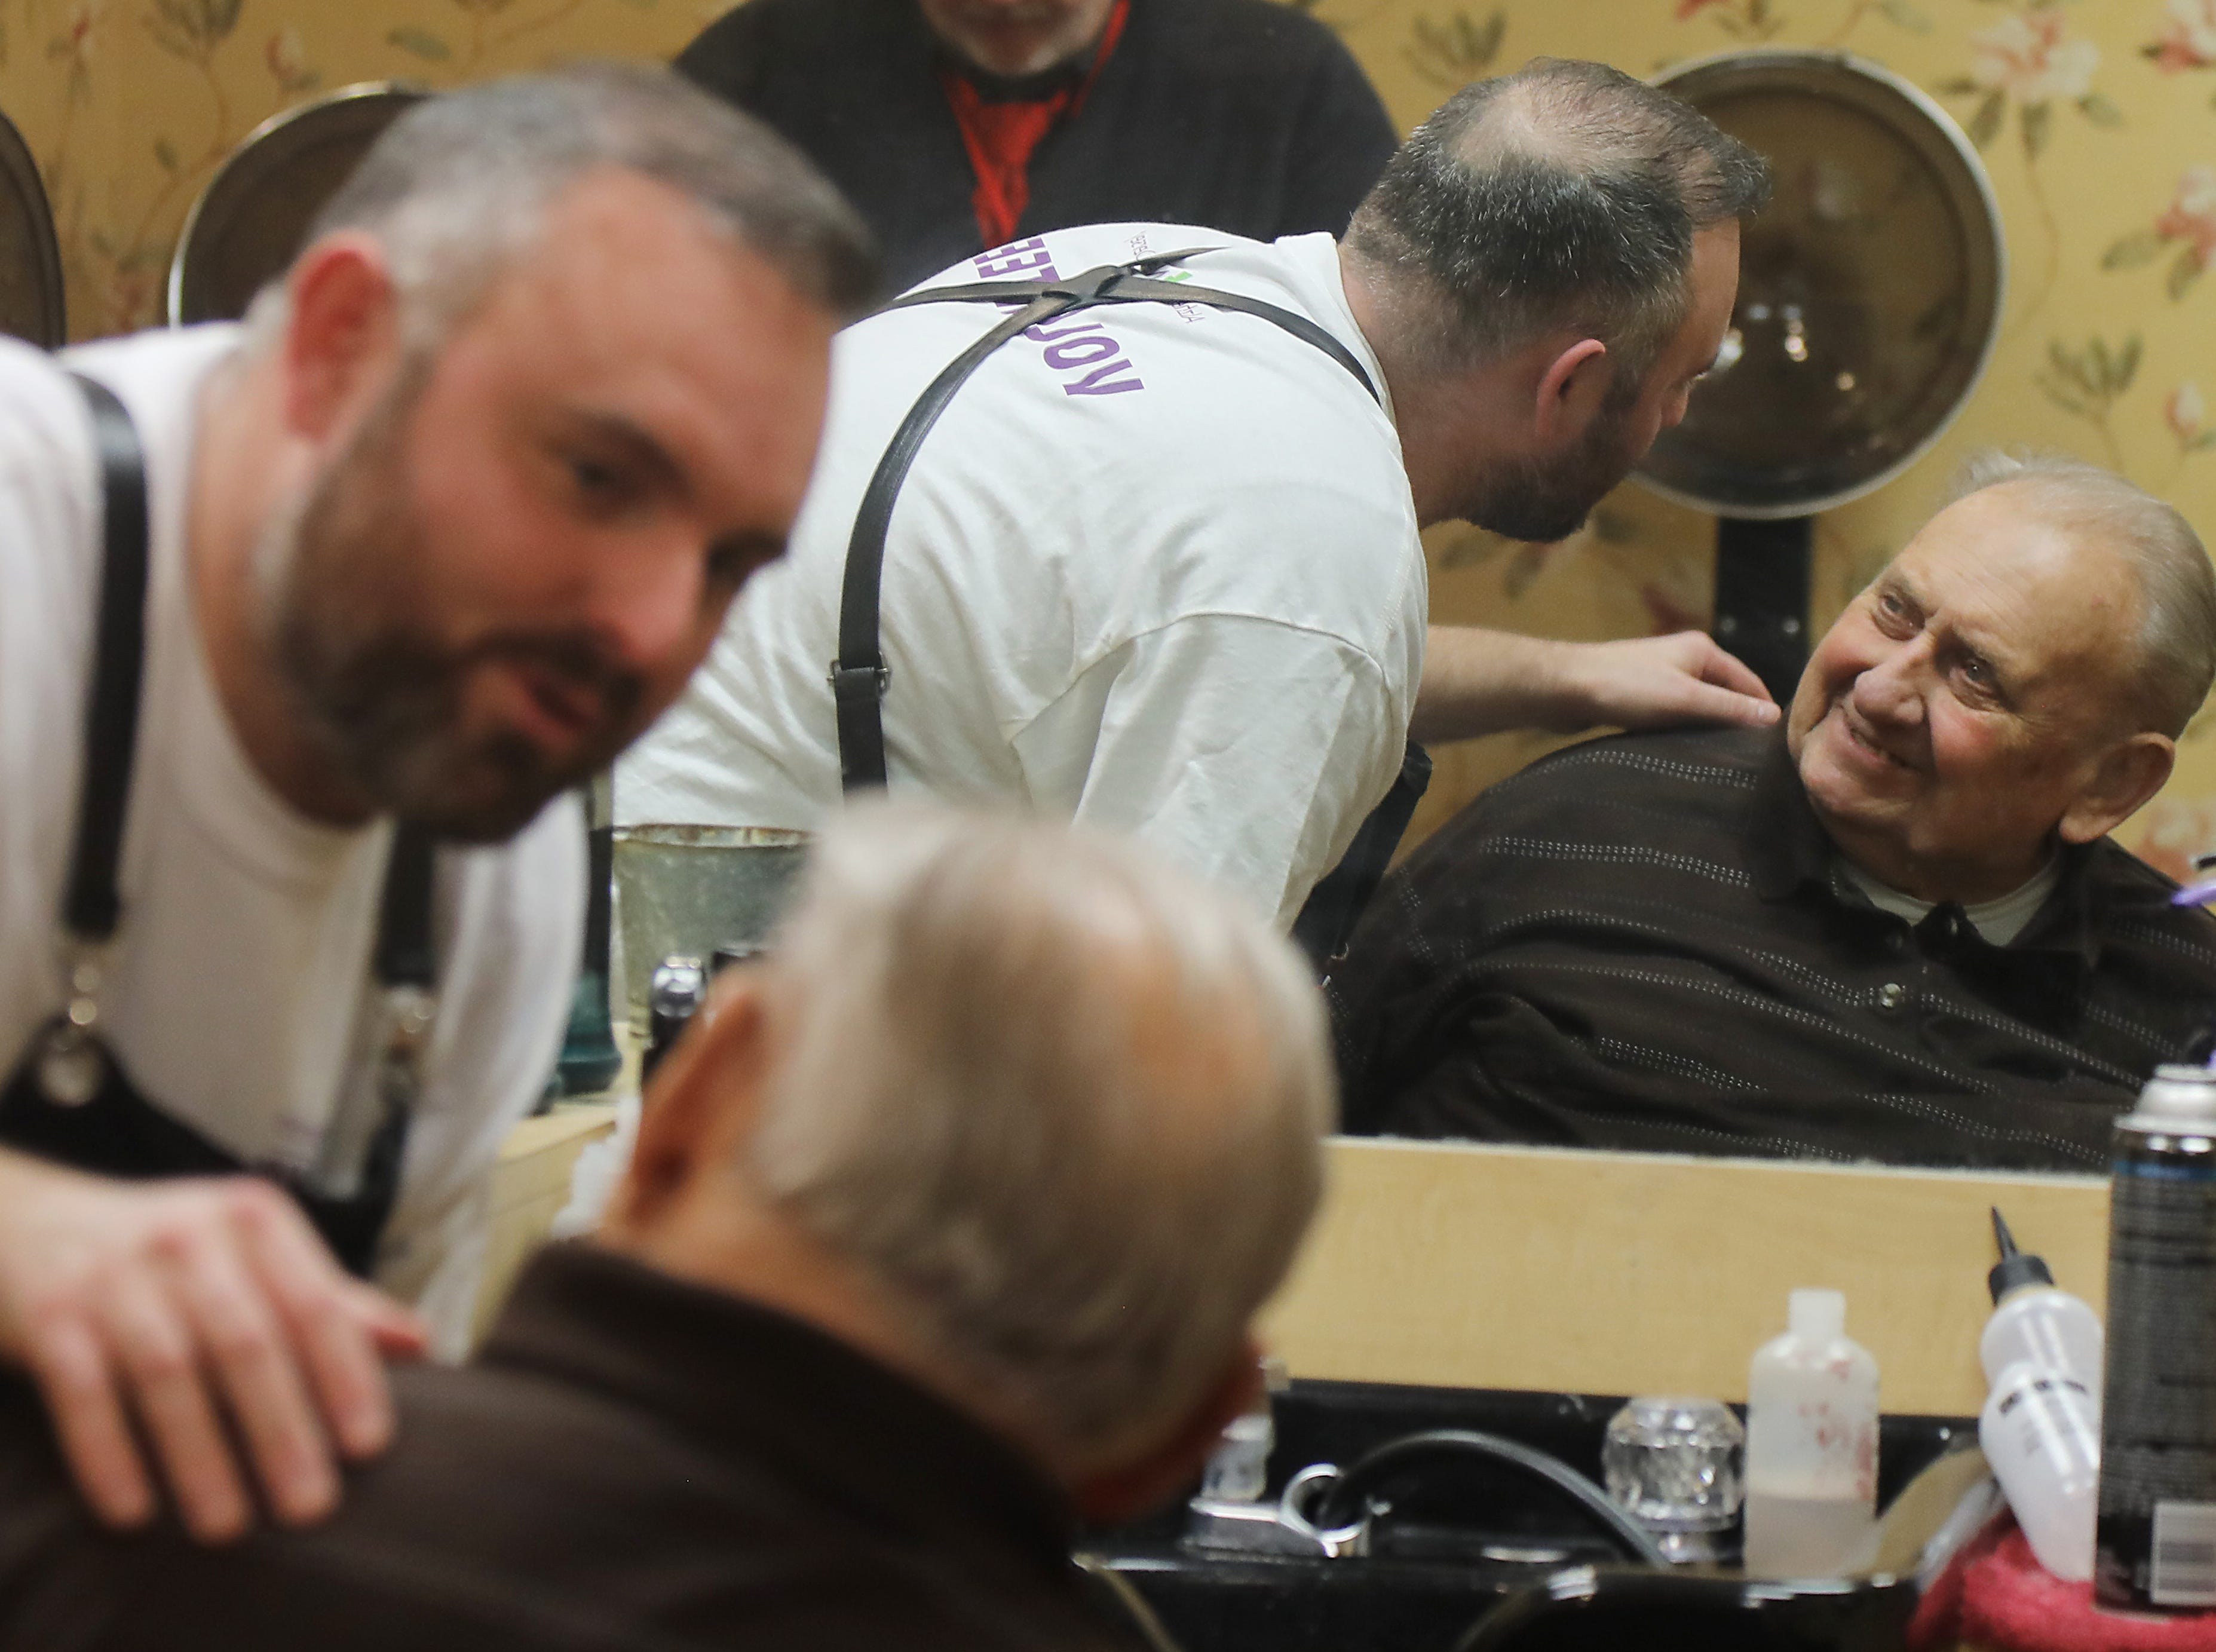 Lenny White, a barber from Northern Ireland, gives a complimentary haircut to Leroy Whitman, 89.  Whitman is a resident of The Chelsea of Montville, an assisted living facility in Montville Twp., NJ on January 3, 2019.